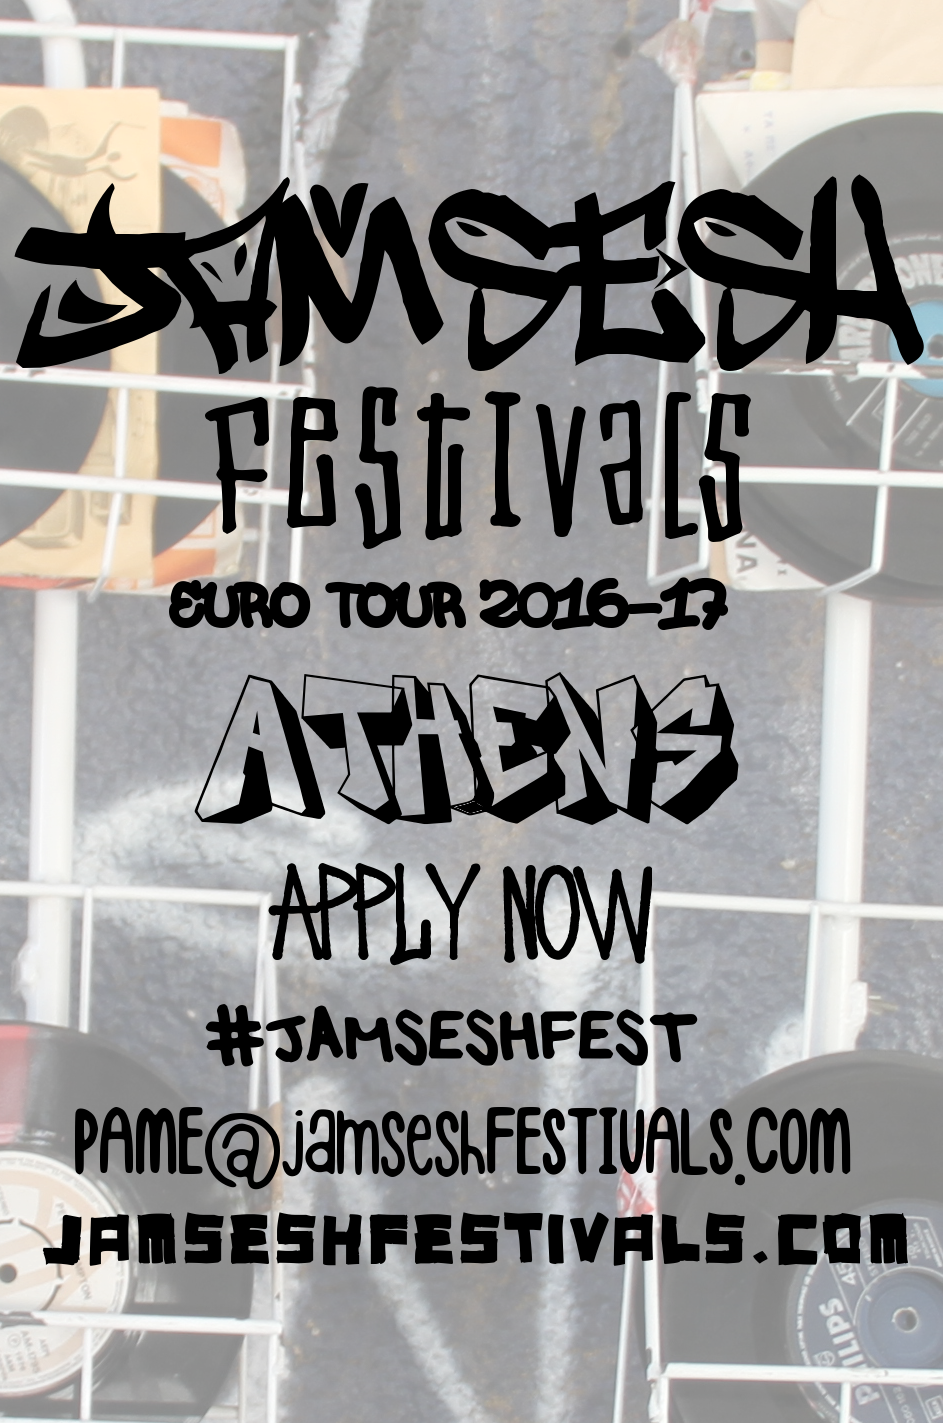 JamSeshFestivals hits #Athens this October on the #JAMSESHFEST EuroTour'16 covering 22 cities in 33 days across Europe and continuing on to 2016/2017 Australia & New Zealand Tour offering ARTISTS discovered along the way an opportunity to join the tour group across the EU, all the way down under and beyond! APPLICATIONS NOW OPEN www.jamseshfestivals.com